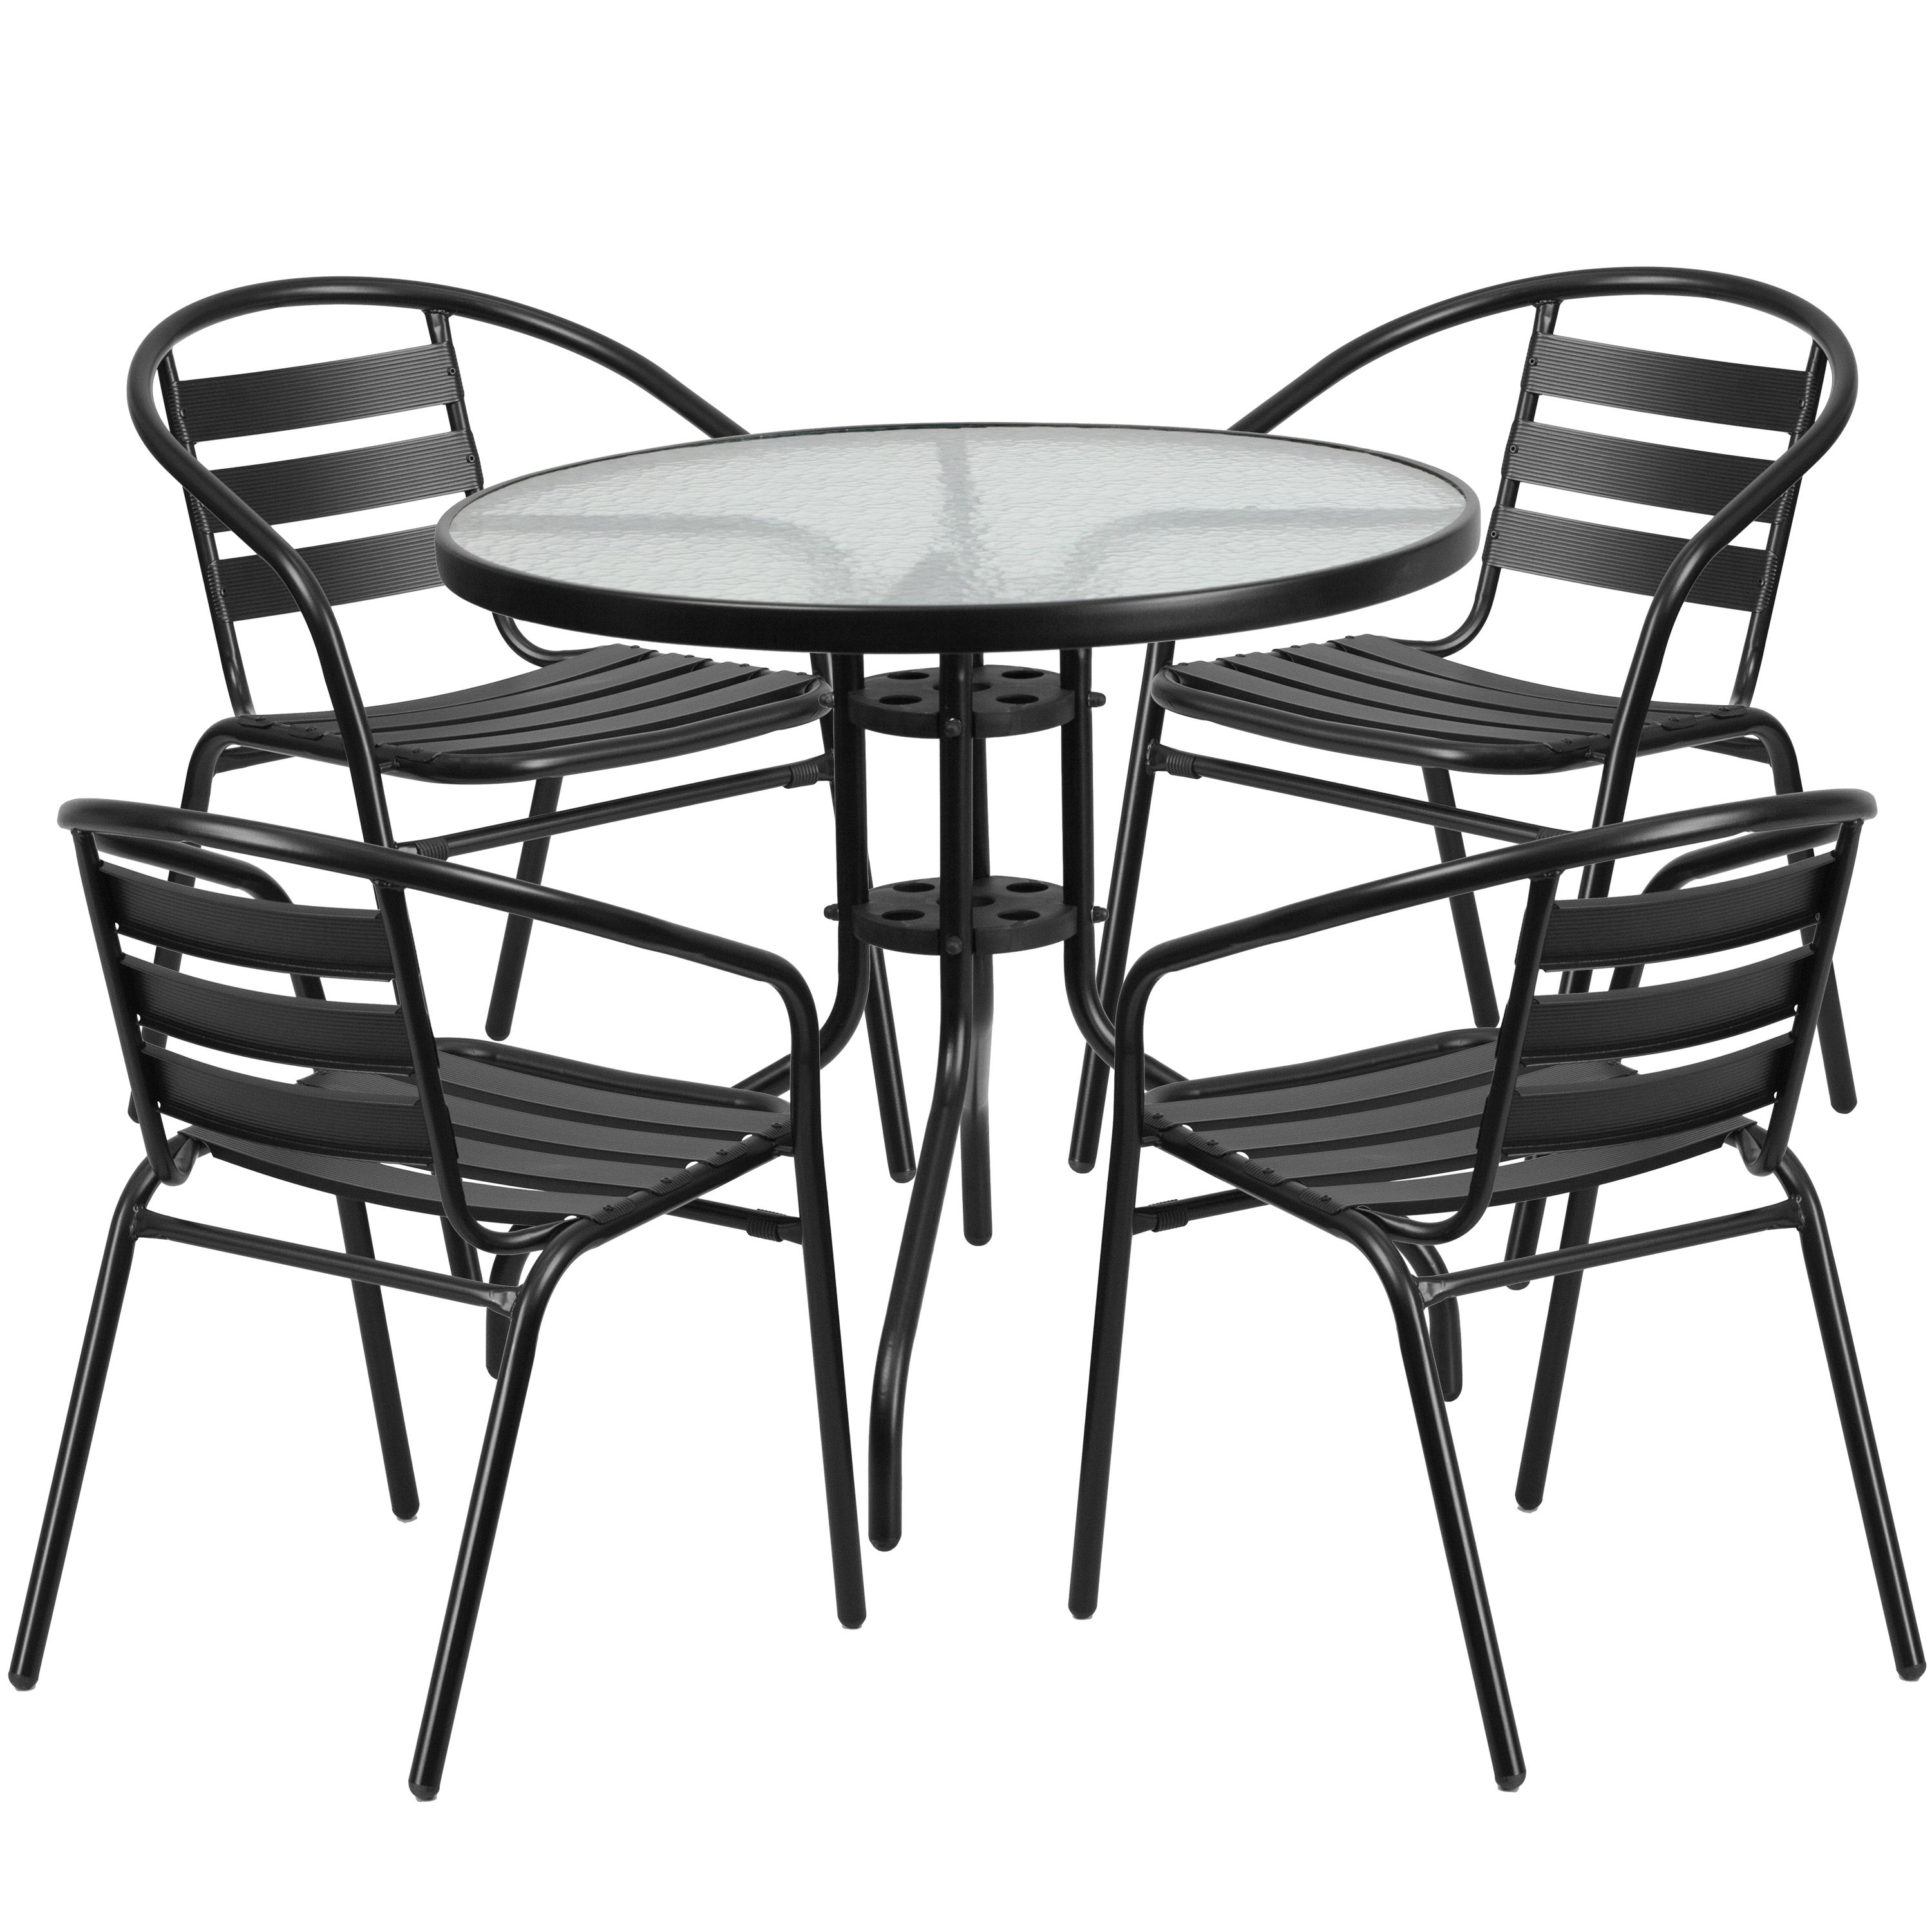 Outdoor Dining Set Round Table.9 Best Patio Dining Sets For 2019